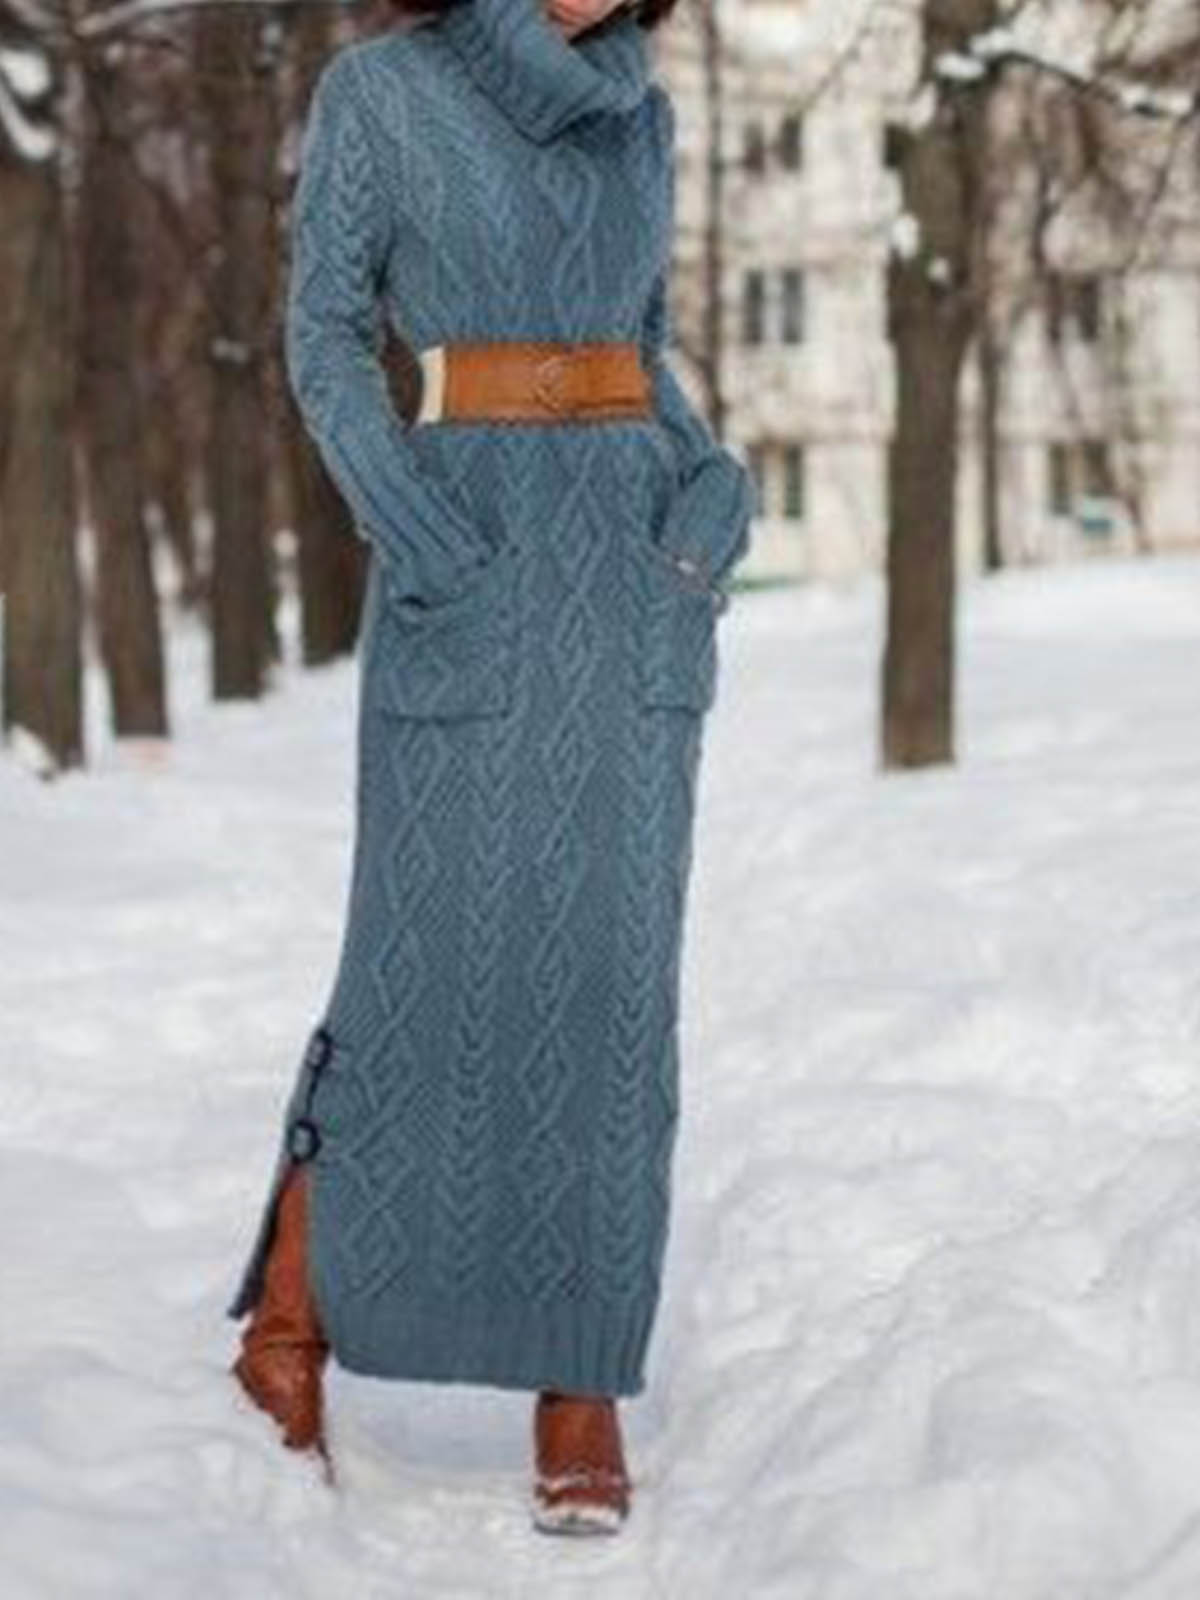 Women's knitted casual turtleneck sweater dress